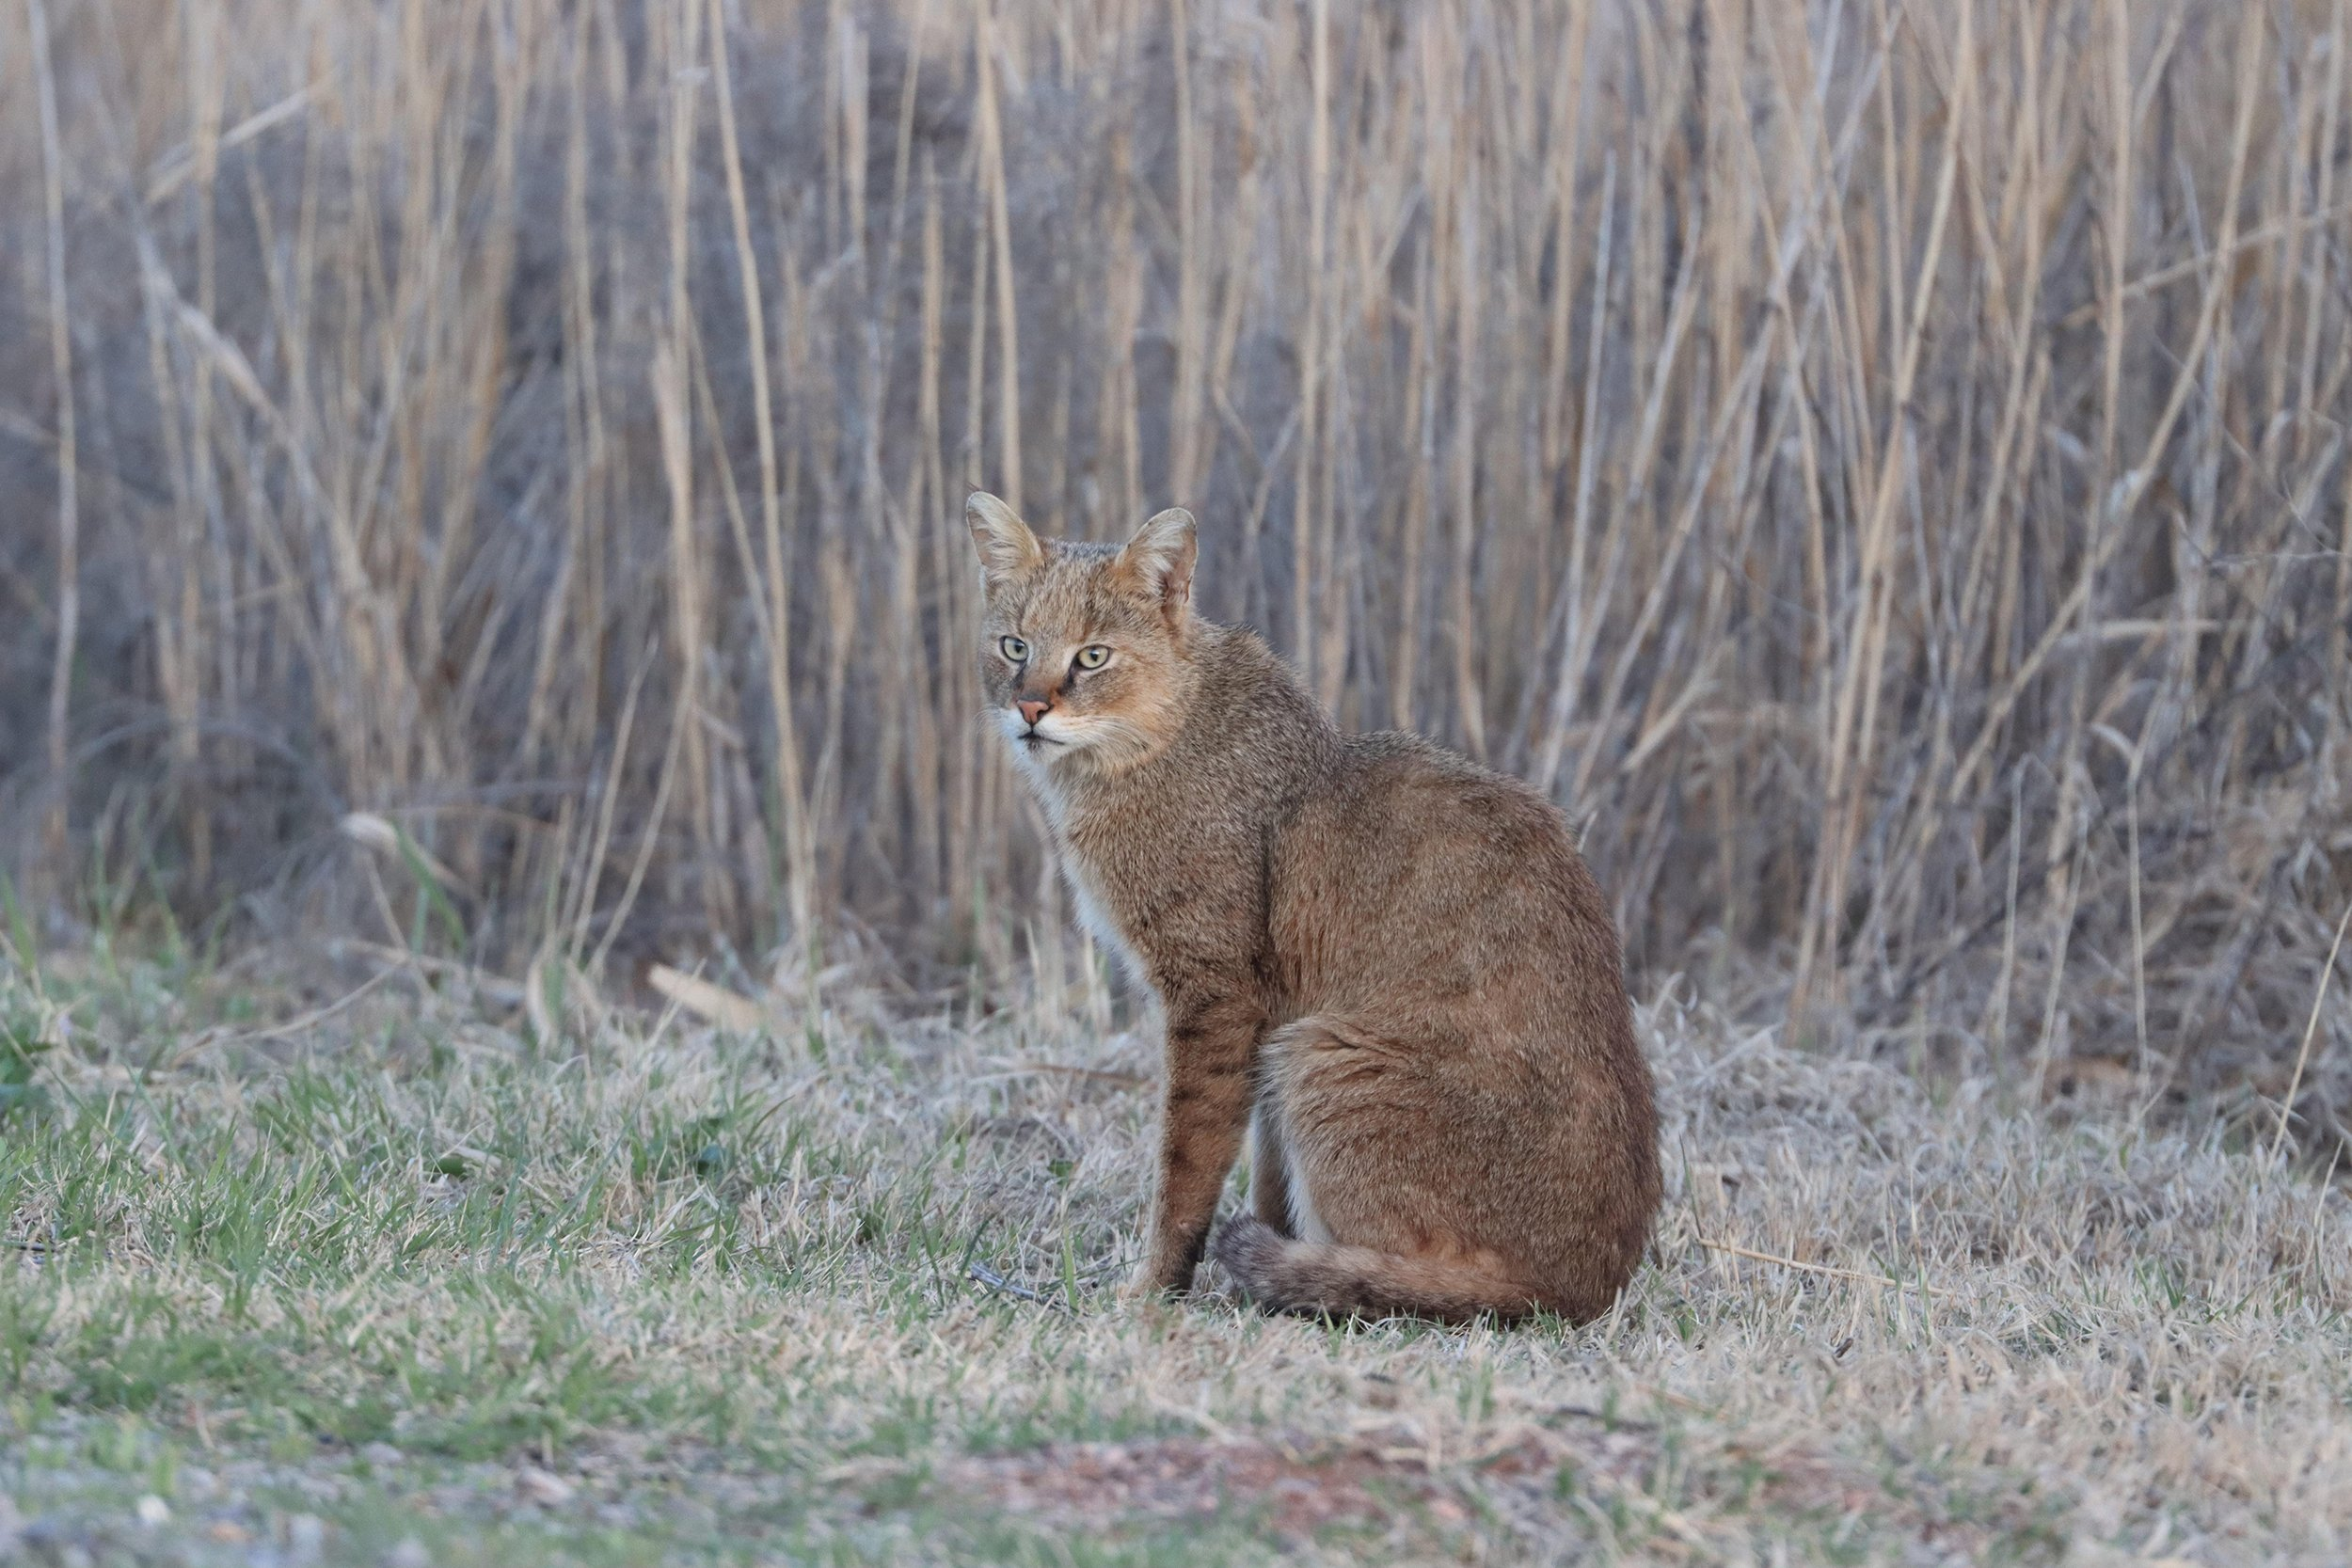 The jungle cat, also called reed cat or swamp cat, is indigenous to the Middle East as well as Southeast Asia.